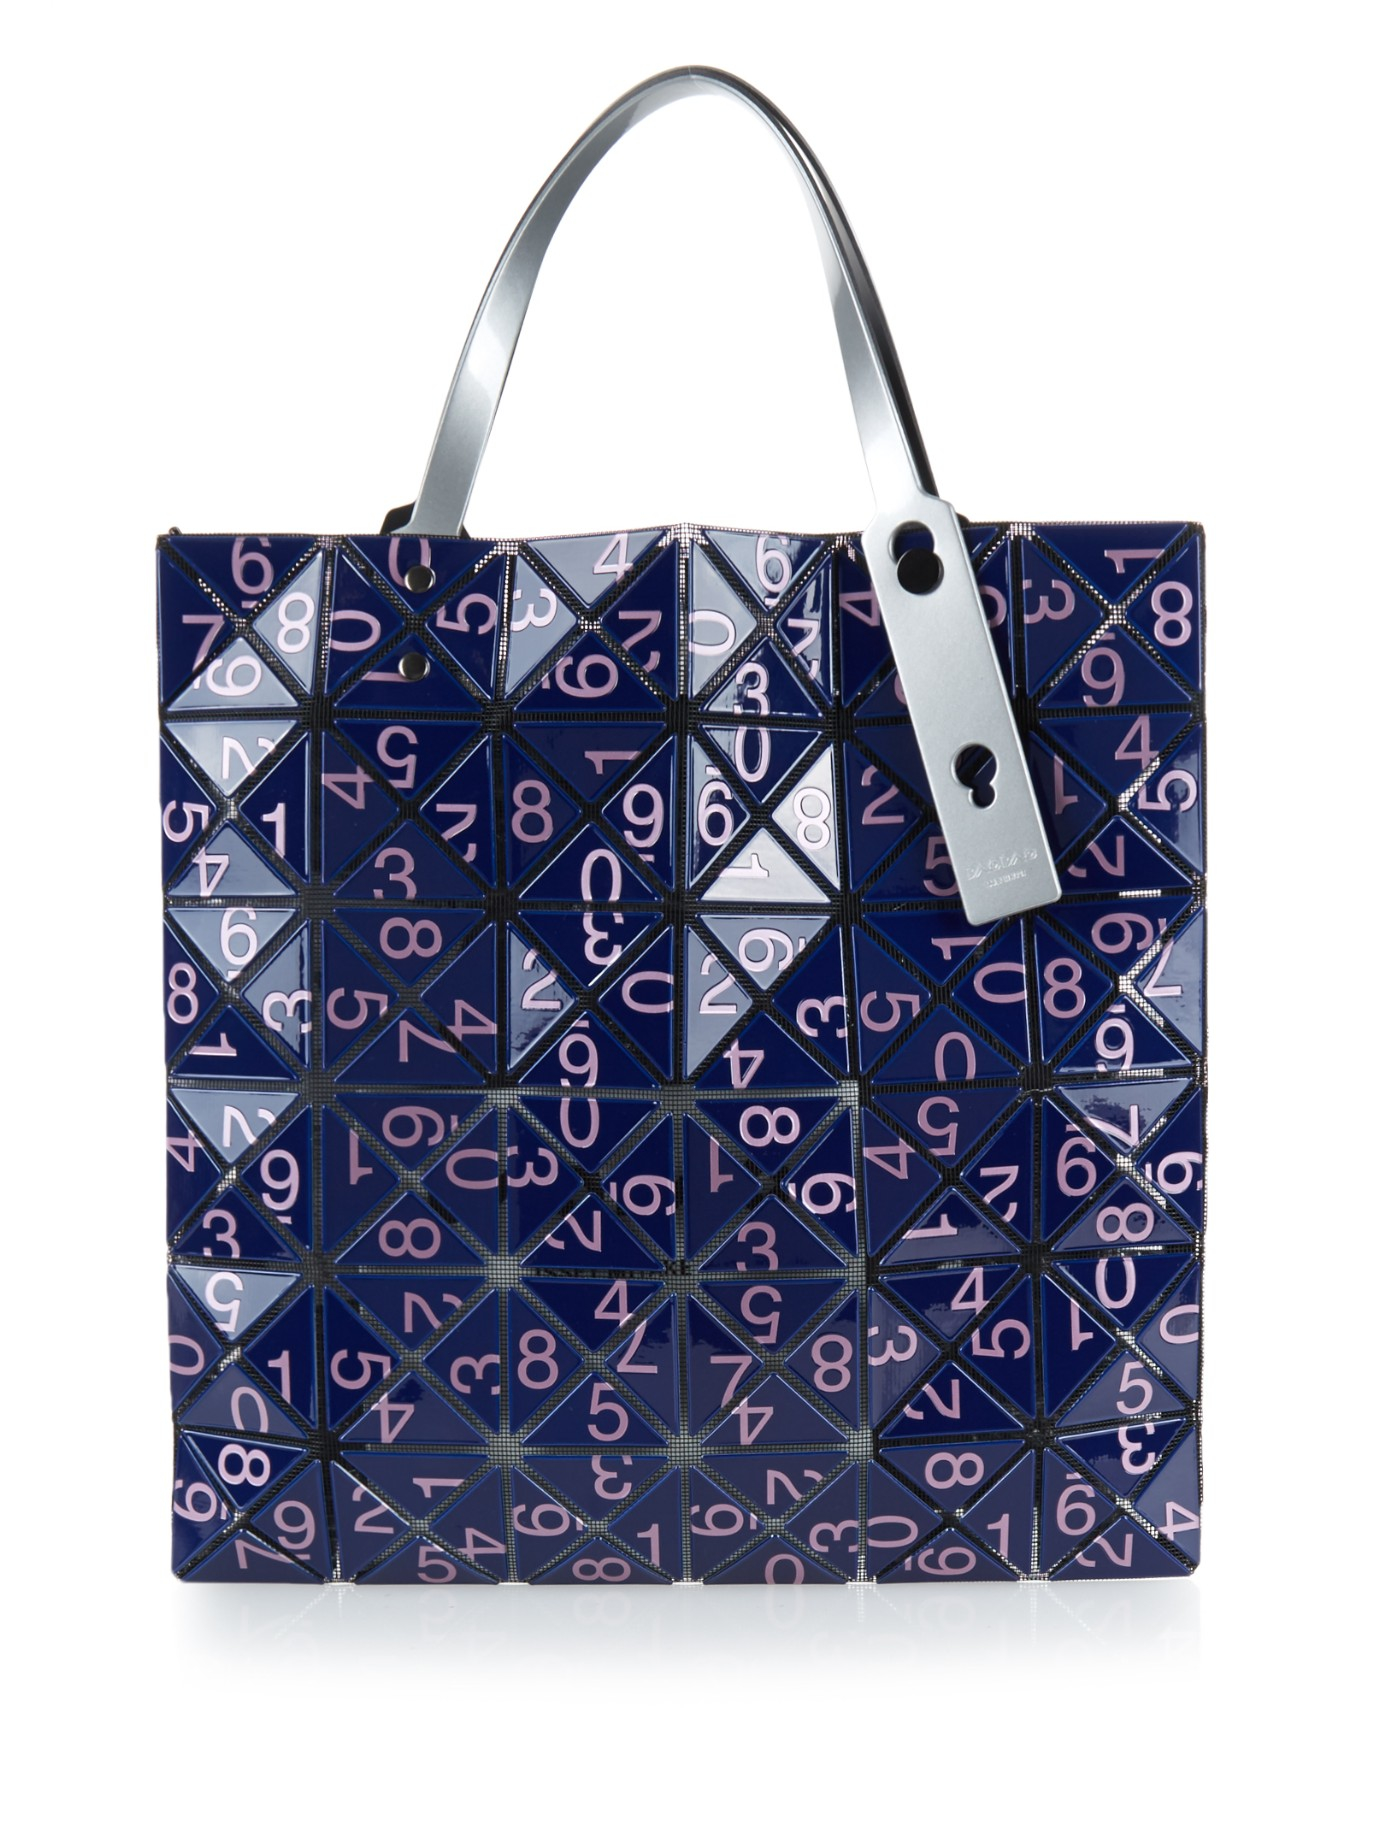 Lyst - Bao Bao Issey Miyake Ransu Tote in Pink 6a9d64d0f6847